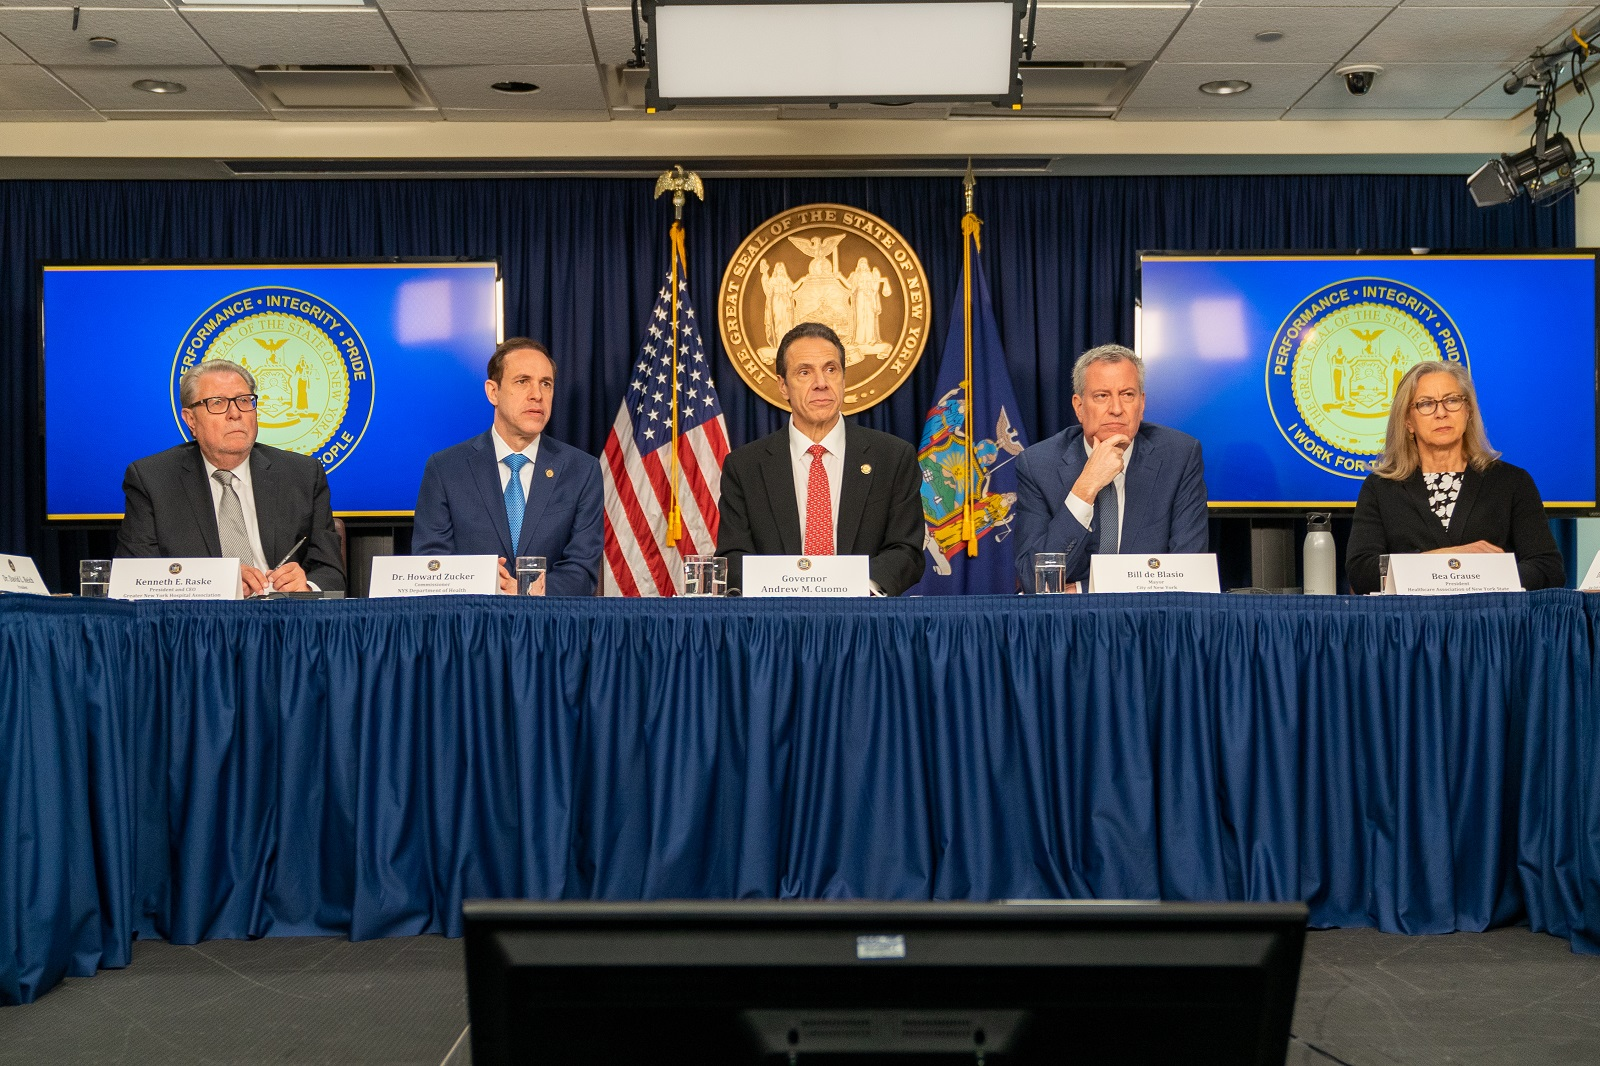 3 confirmed cases of COVID-19 in Erie County, Cuomo says – The ...